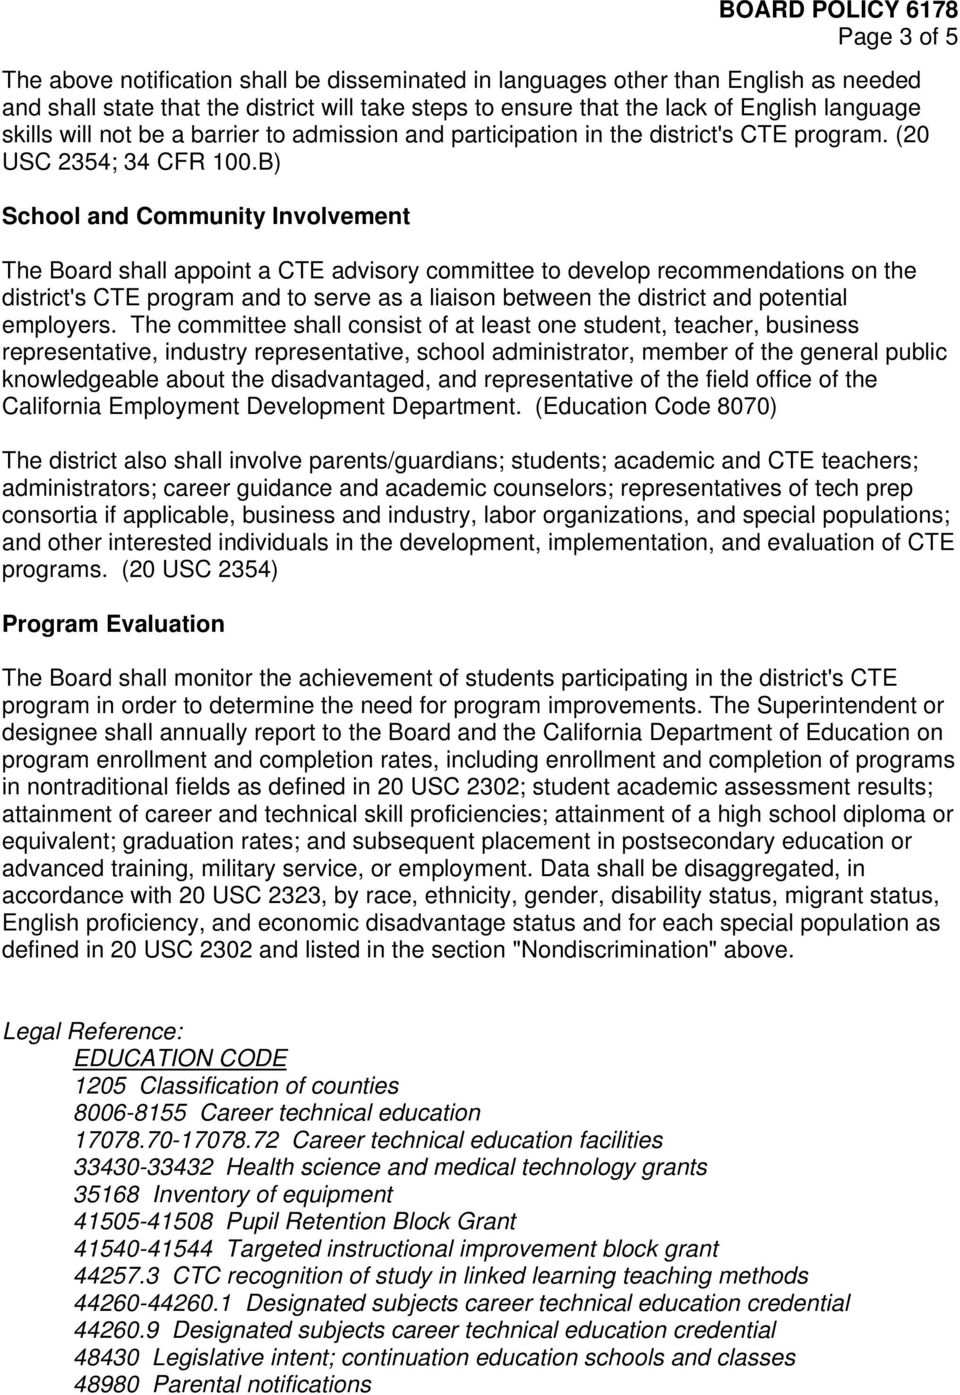 B) School and Community Involvement The Board shall appoint a CTE advisory committee to develop recommendations on the district's CTE program and to serve as a liaison between the district and